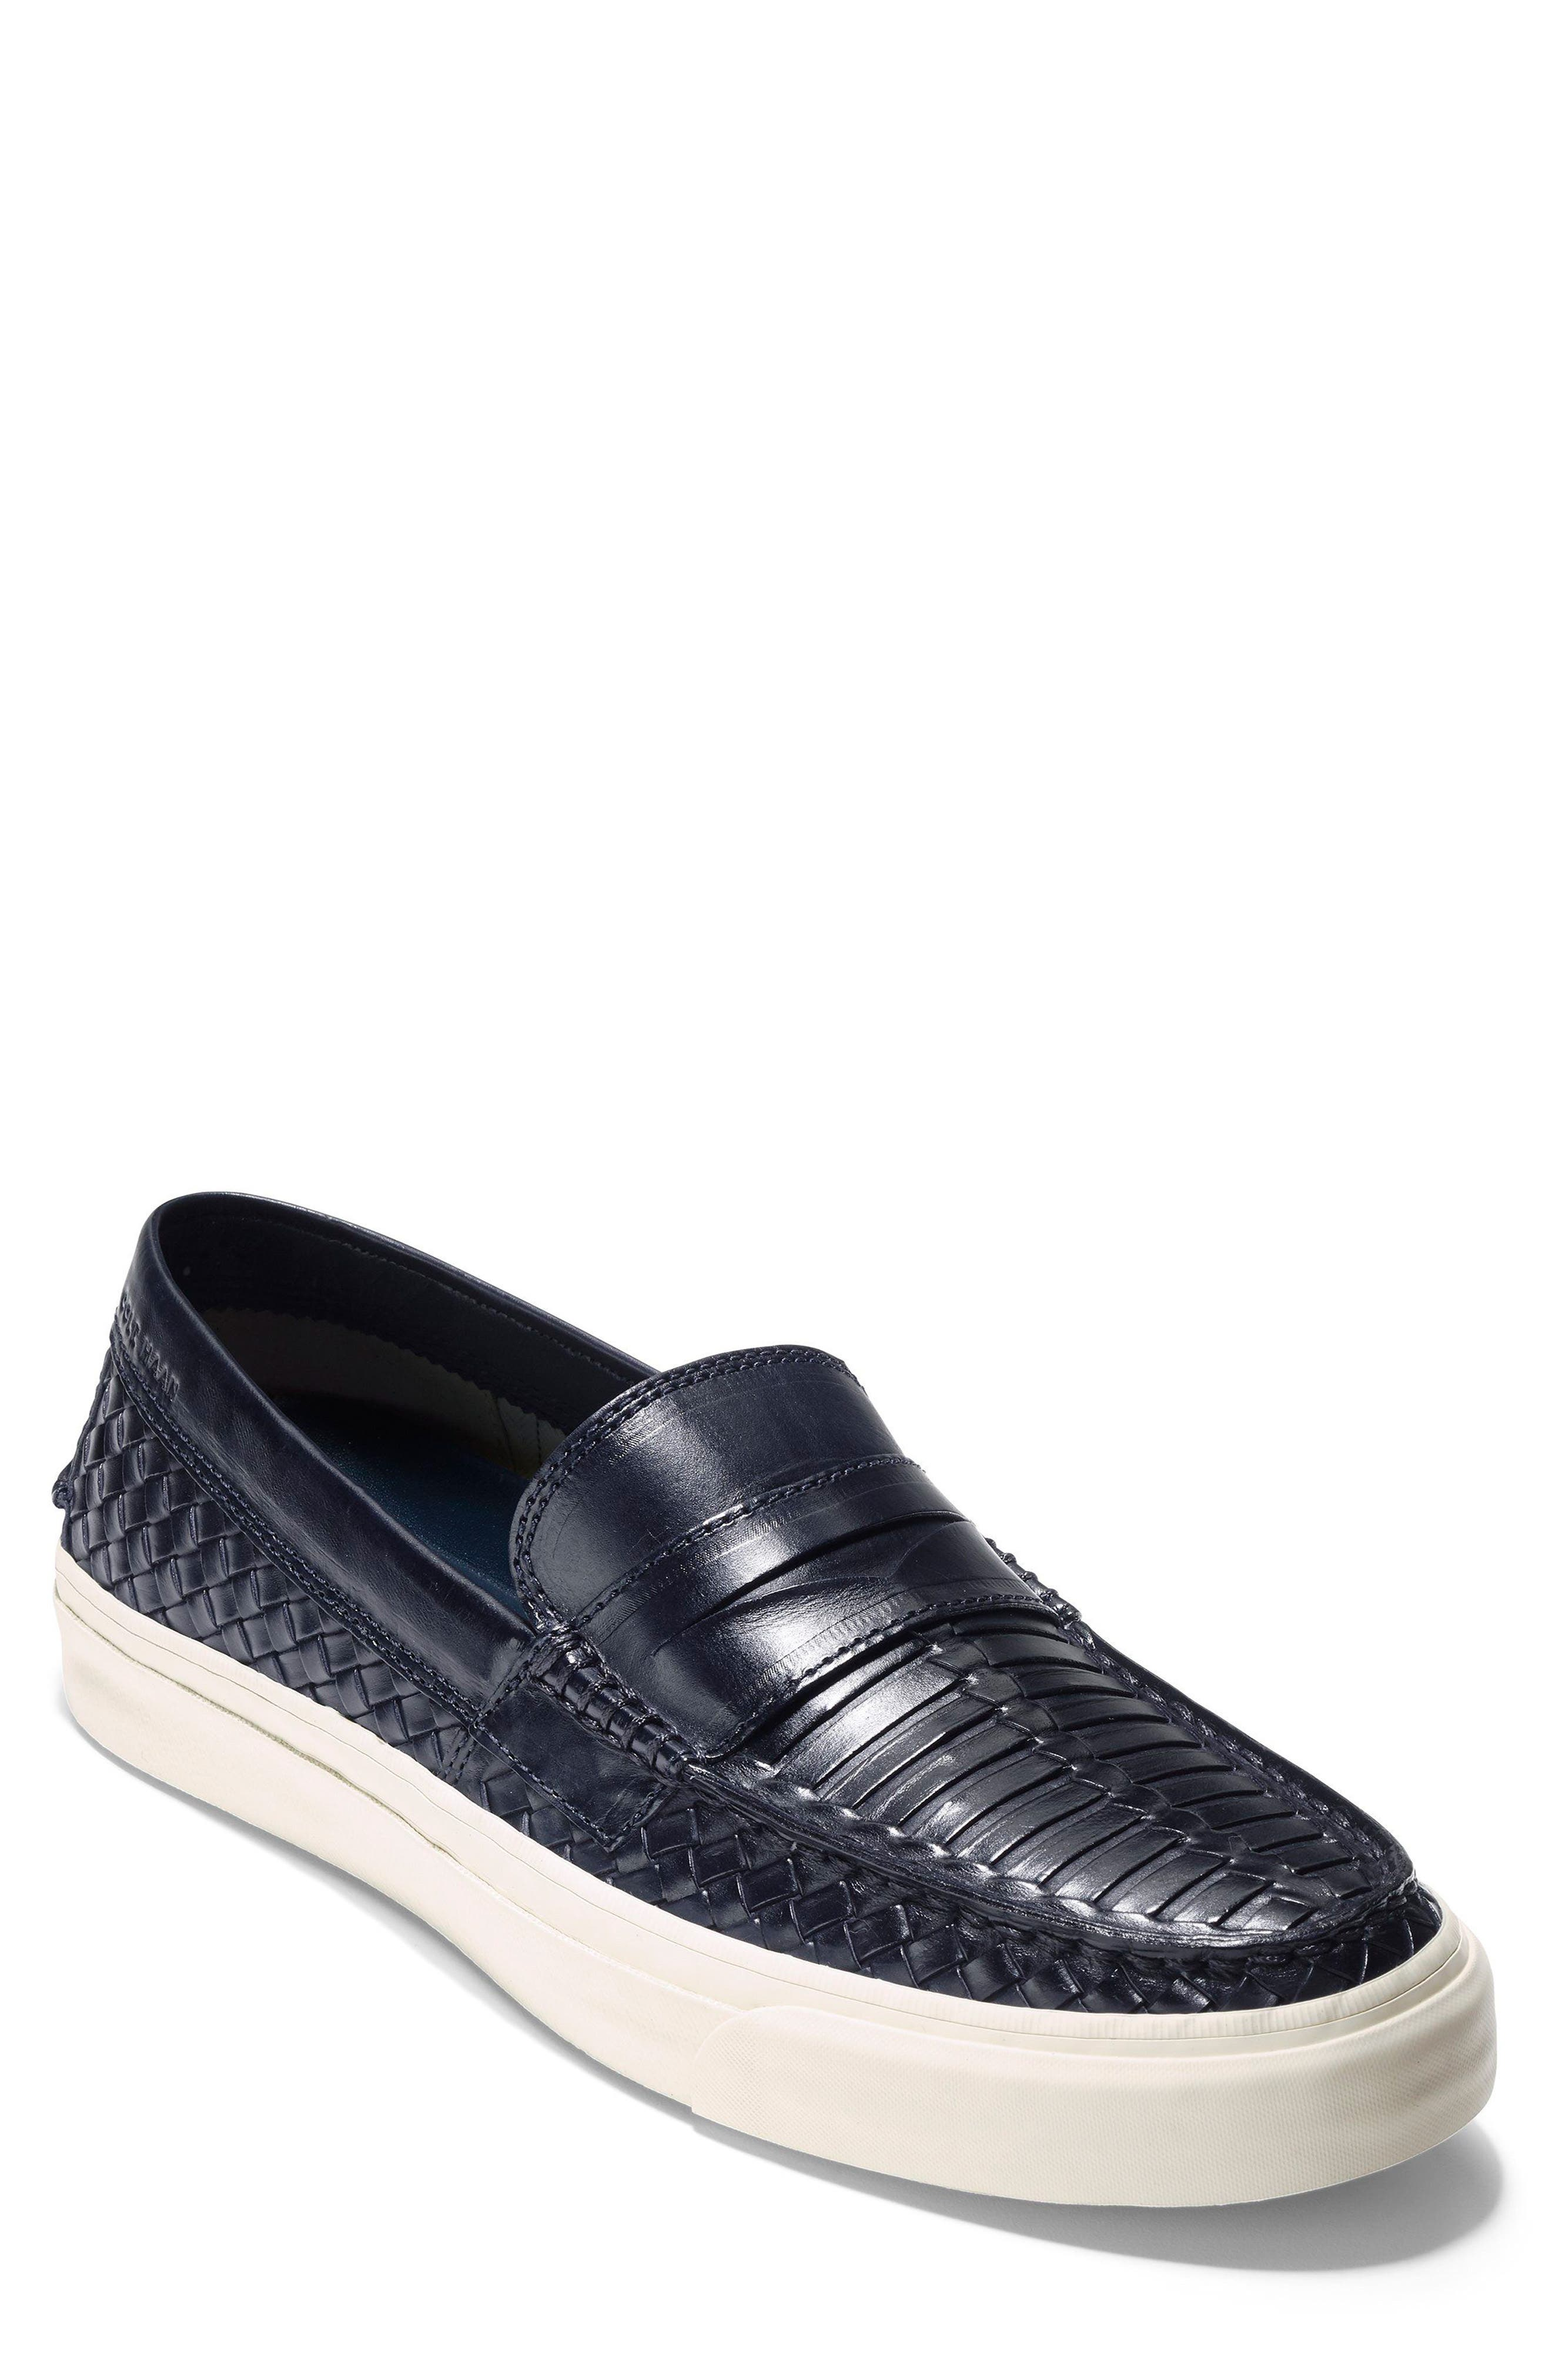 Alternate Image 1 Selected - Cole Haan Pinch Weekender LX Huarache Loafer (Men)